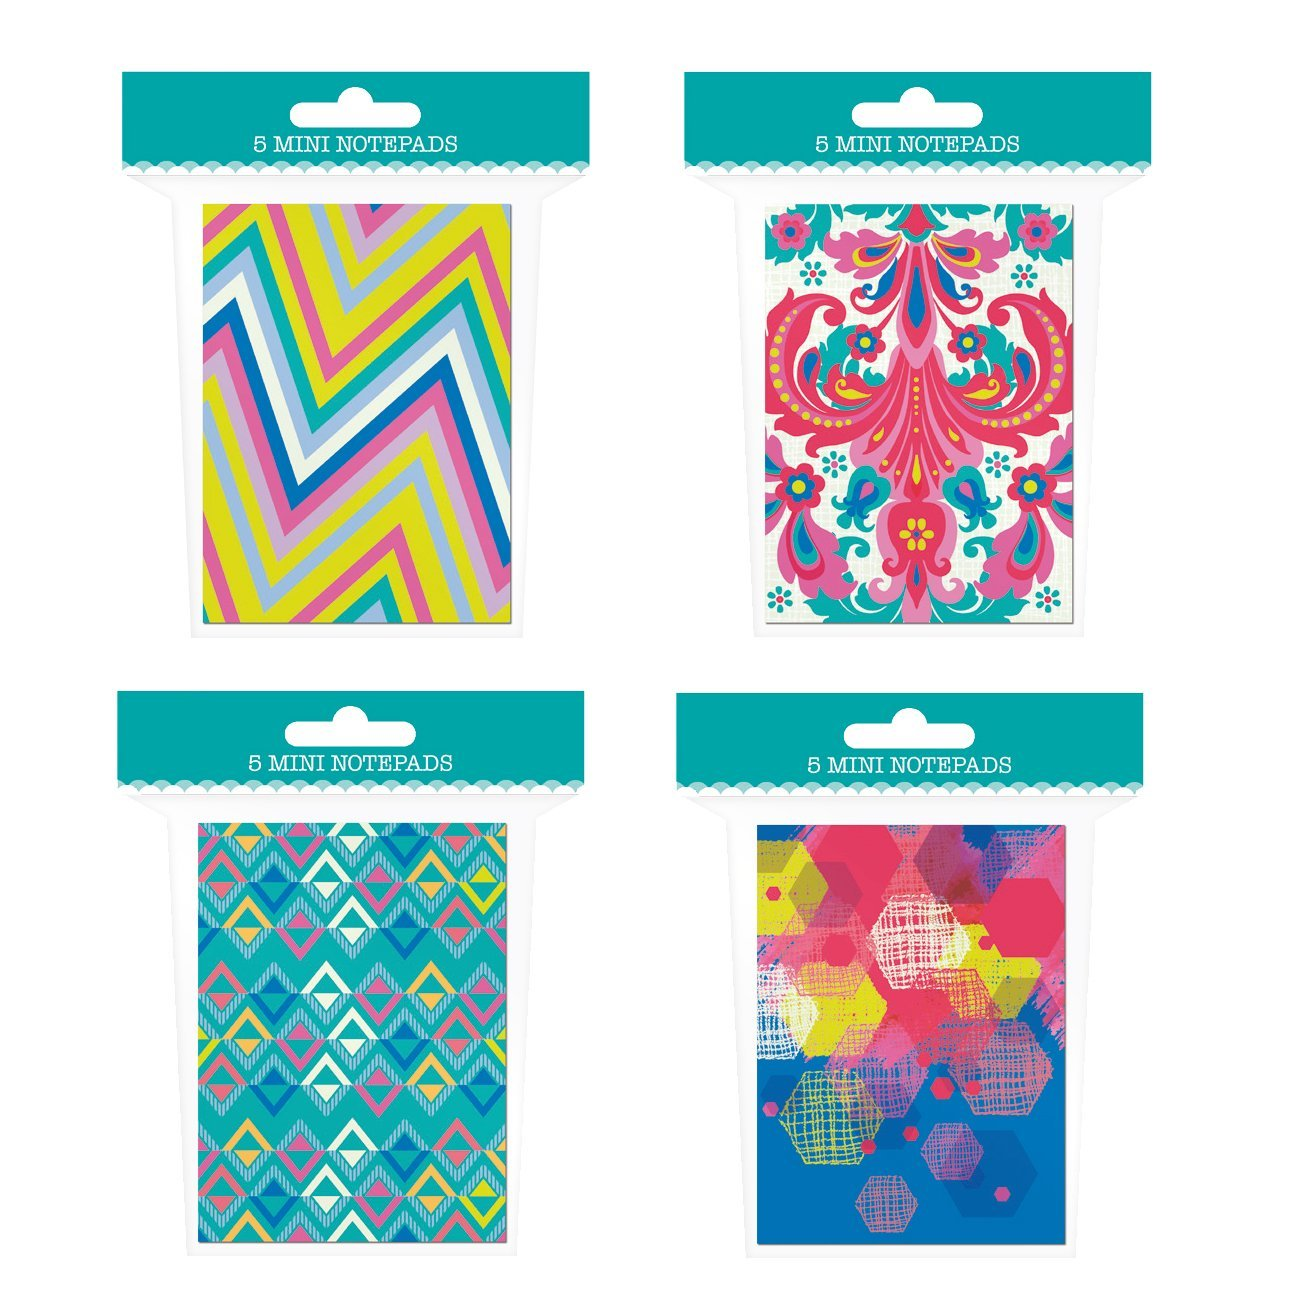 """Mini Notepad Set - 20 Notebooks Total! 4 Different Designs - 4"""" x 2.75"""" Pocket Notebooks - Lined Pages"""